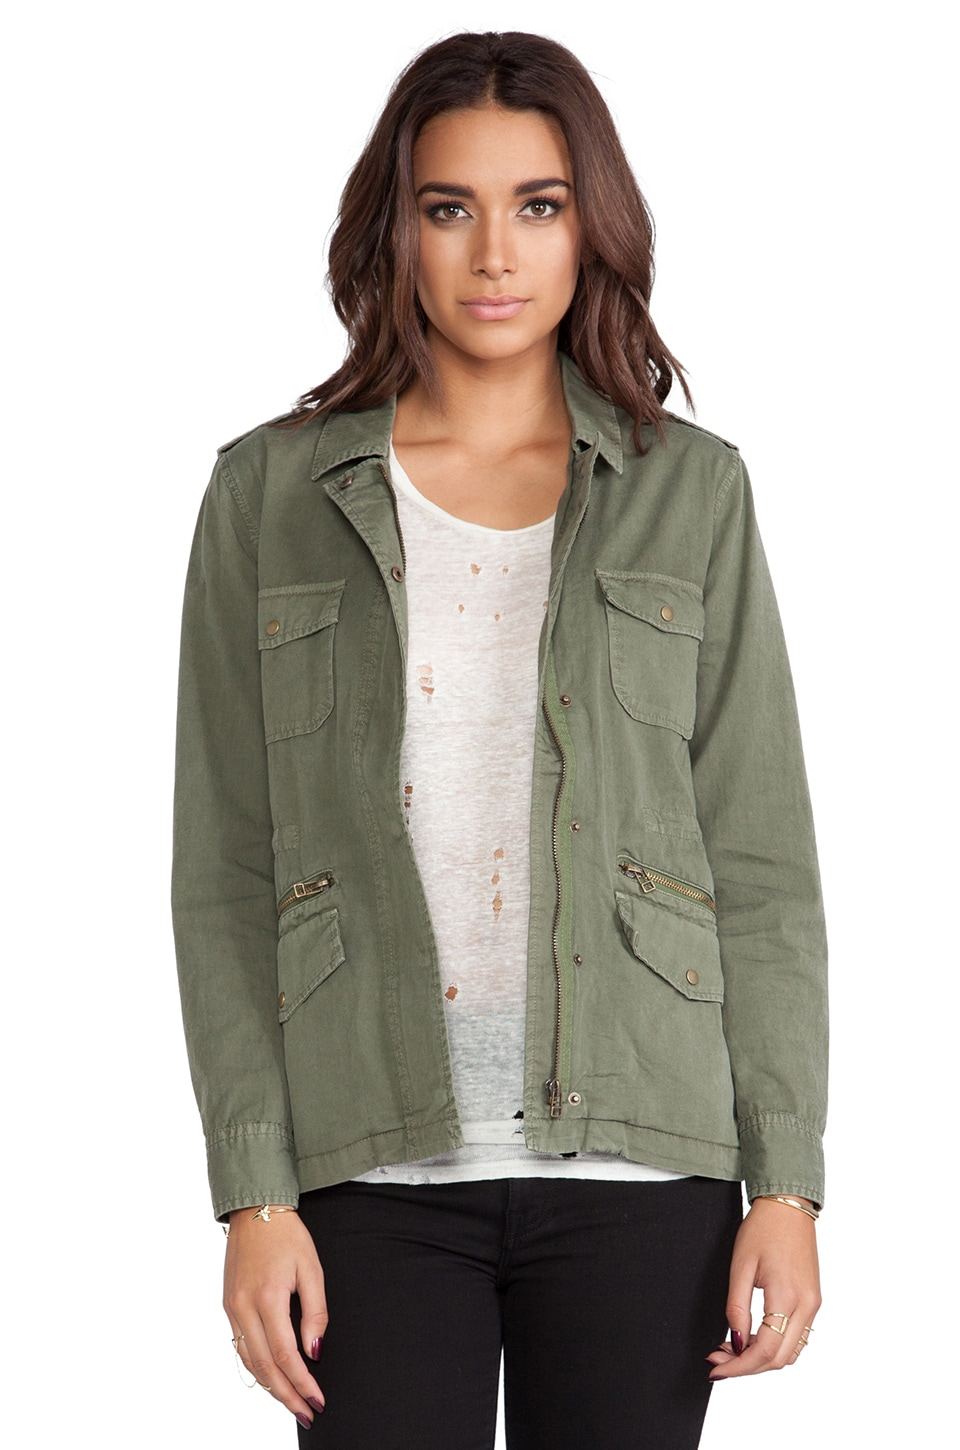 Velvet by Graham & Spencer x Lily Aldridge Ruby Army Jacket in Forest